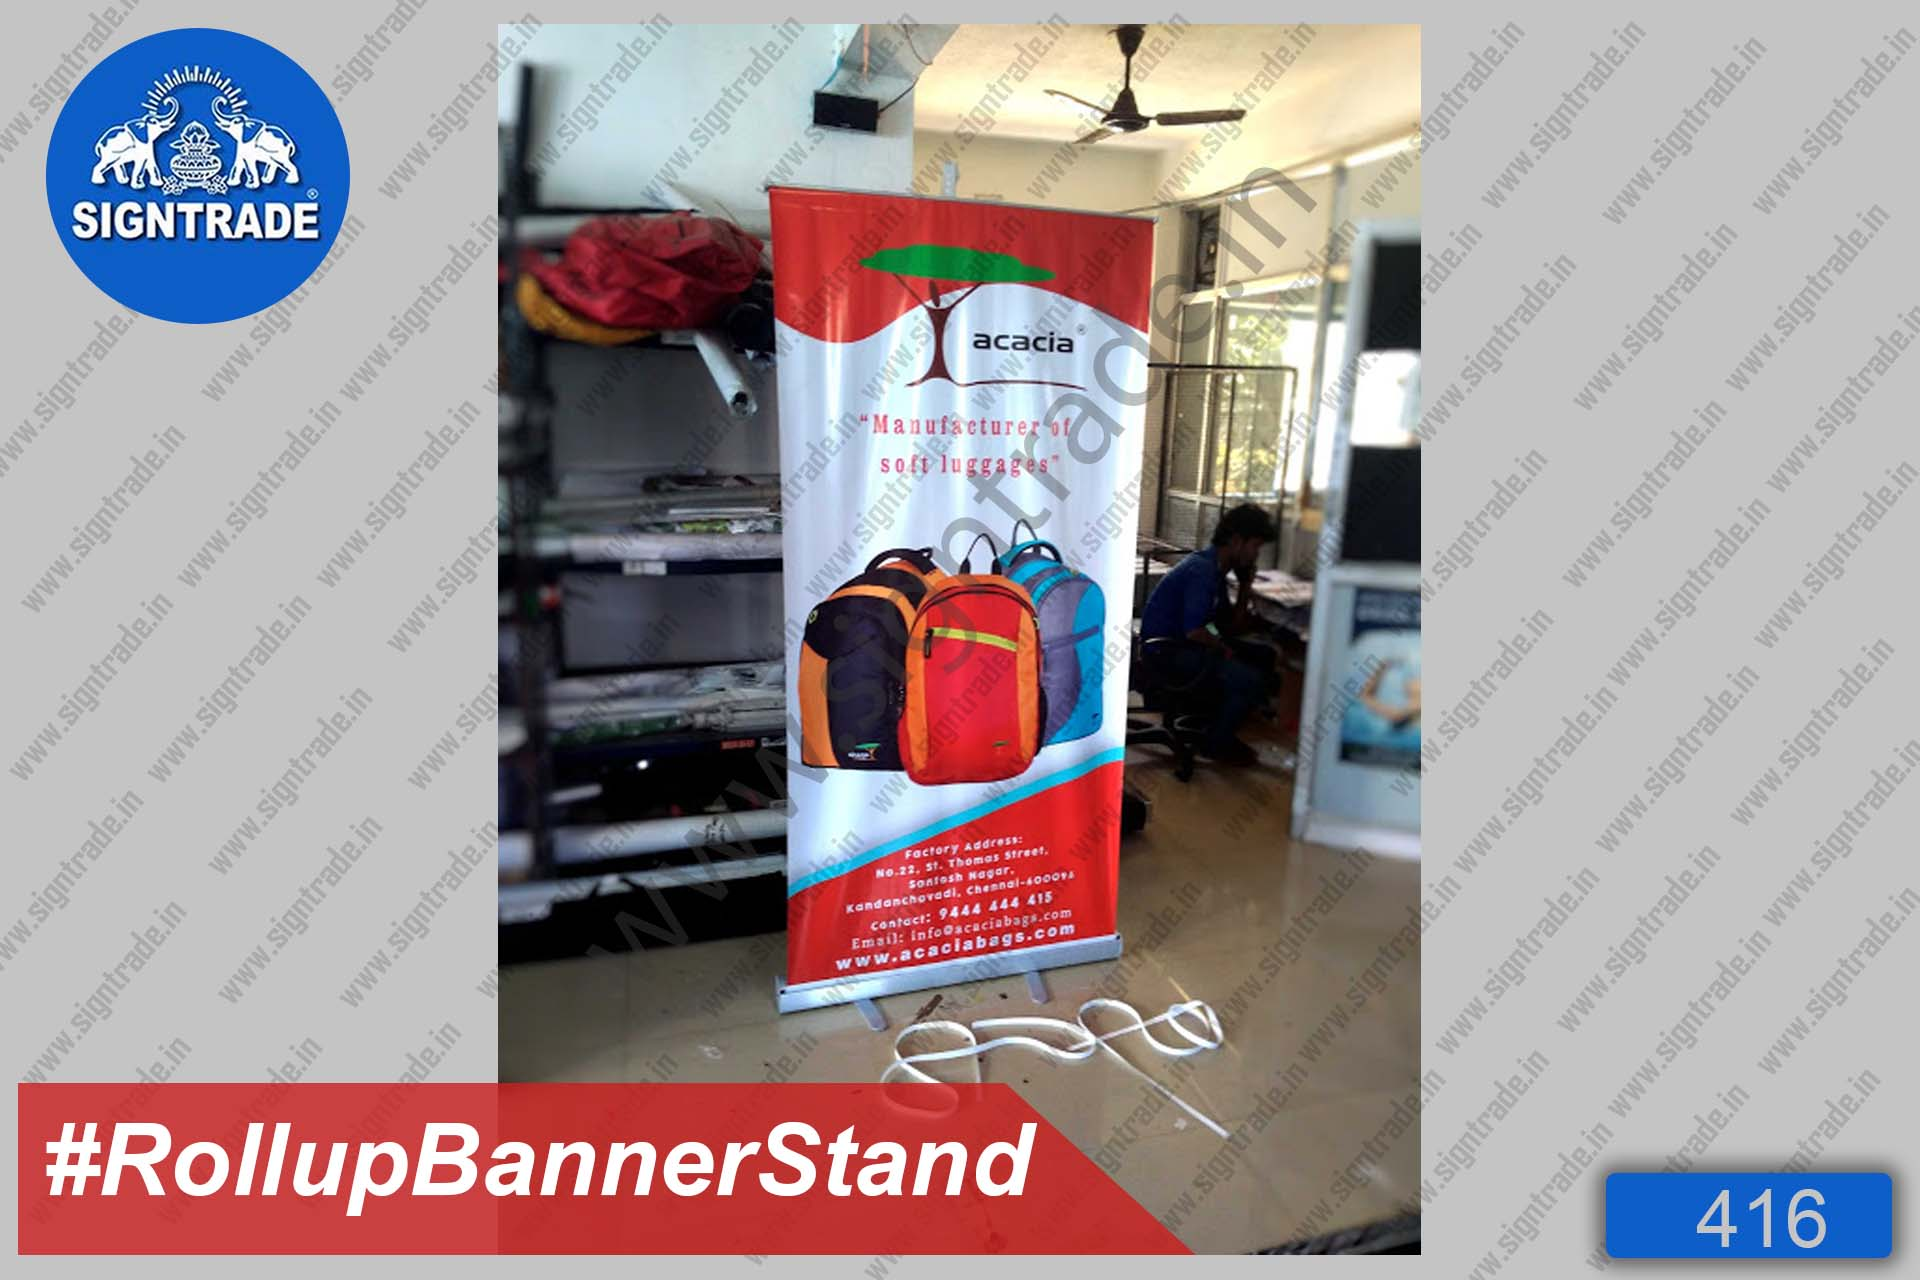 Acacia Manufacturer of Soft Luggage - Roll Up Banner Stand